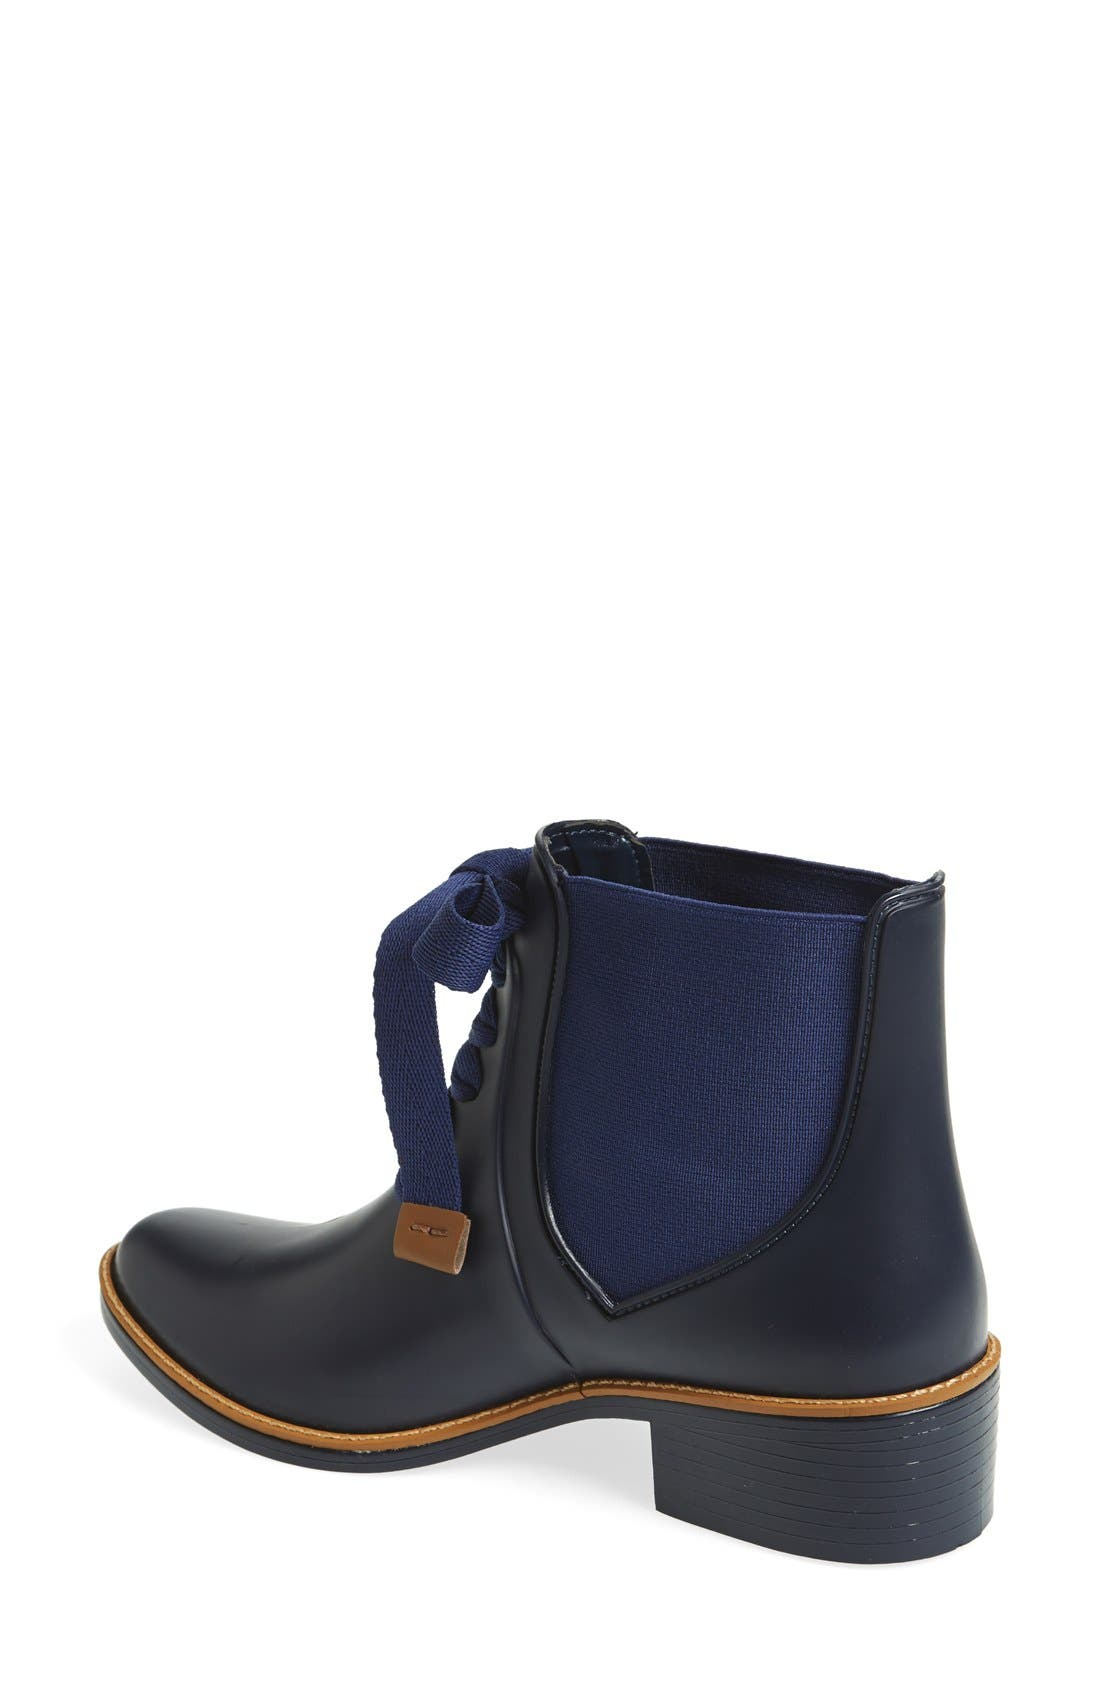 Alternate Image 3  - Bernardo Lacey Short Waterproof Rain Boot (Women)